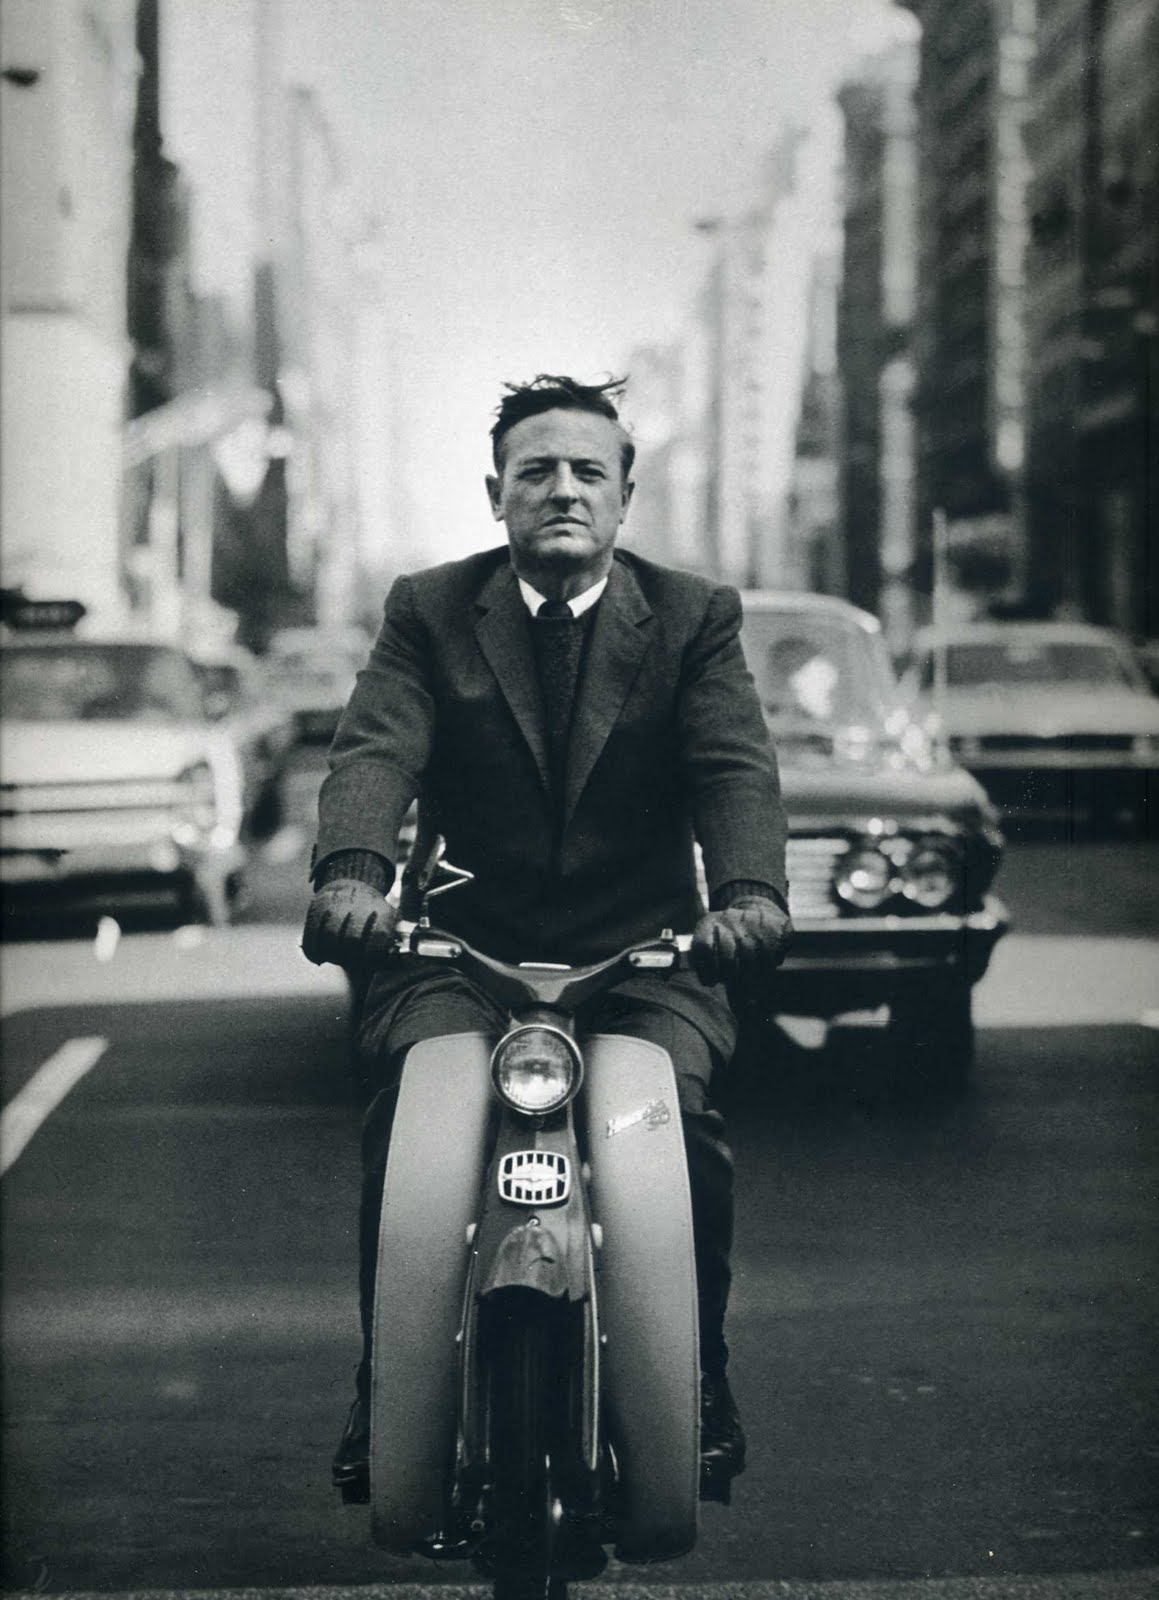 The Ivy League Look: Wm. F. Buckley, Jr., 1967 – without a helmet, because, why?